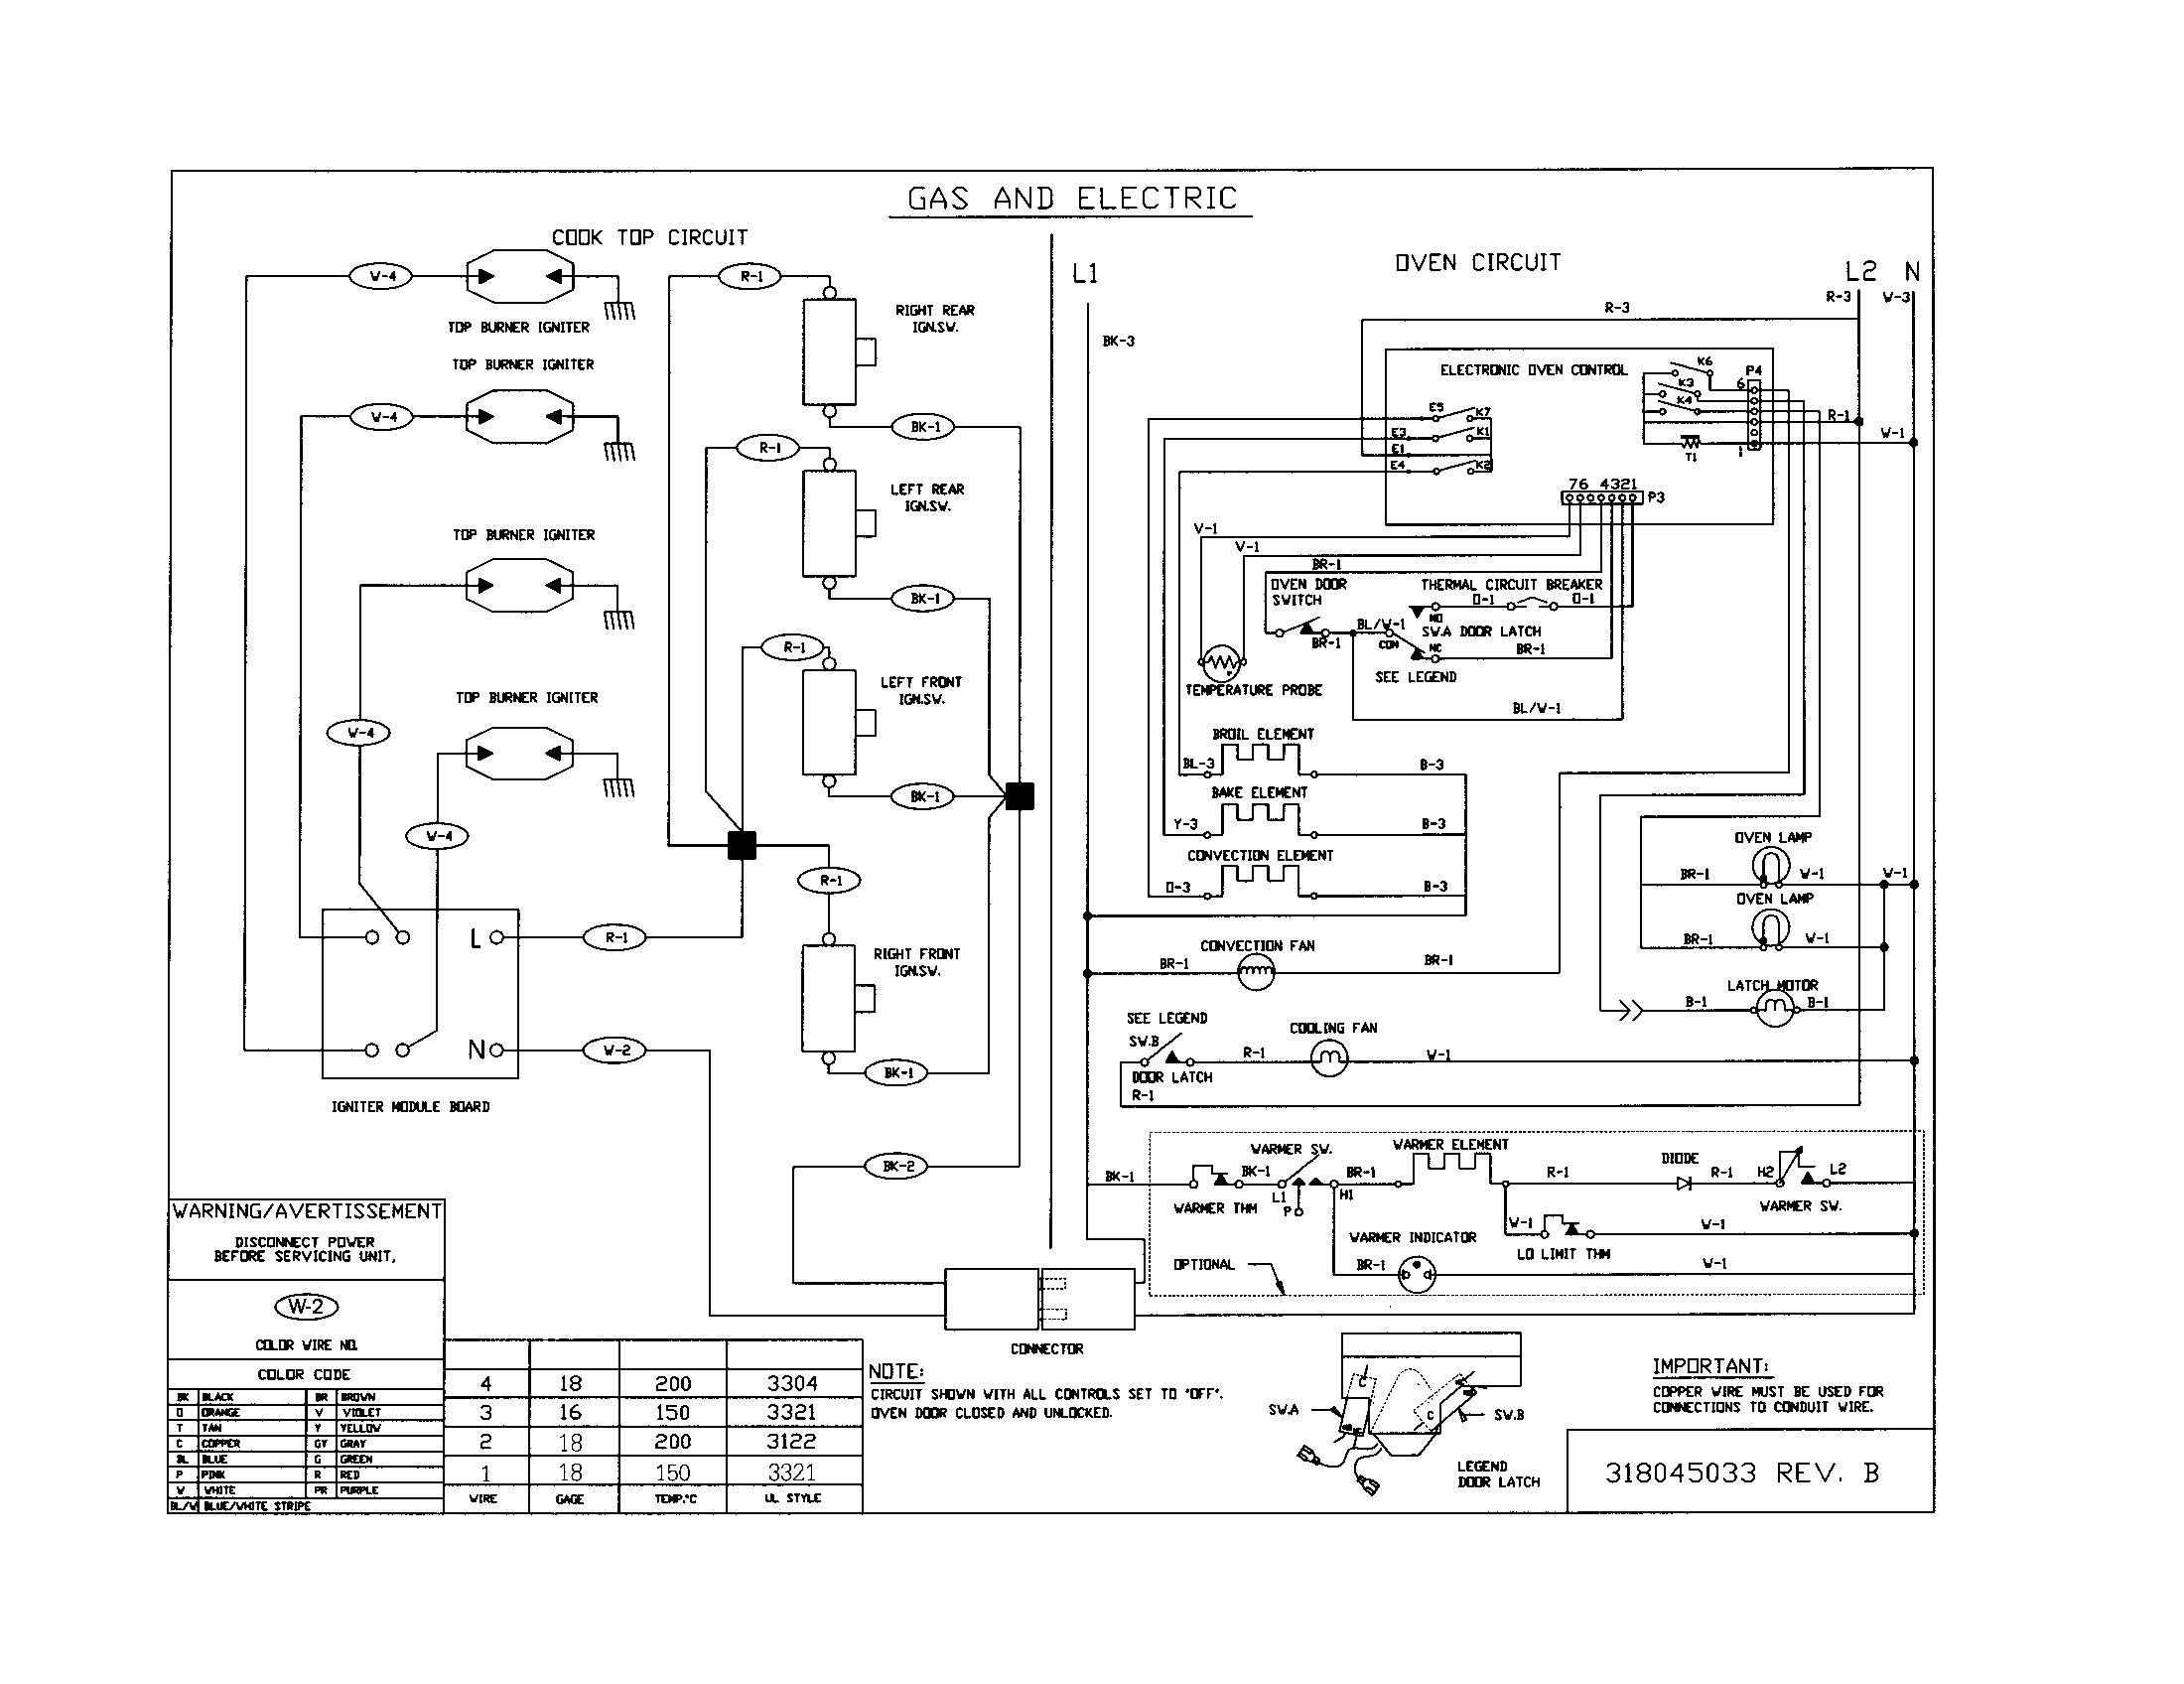 Schematic Wiring Diagram furthermore 2002 Daewoo Lanos Fuse Box Diagram in addition Free Gmc Wiring Diagrams For Vehicles furthermore Index together with Serpentine Belt Diagram 2007 Toyota Sienna V6 35 Liter Engine 07068. on chrysler parts diagrams